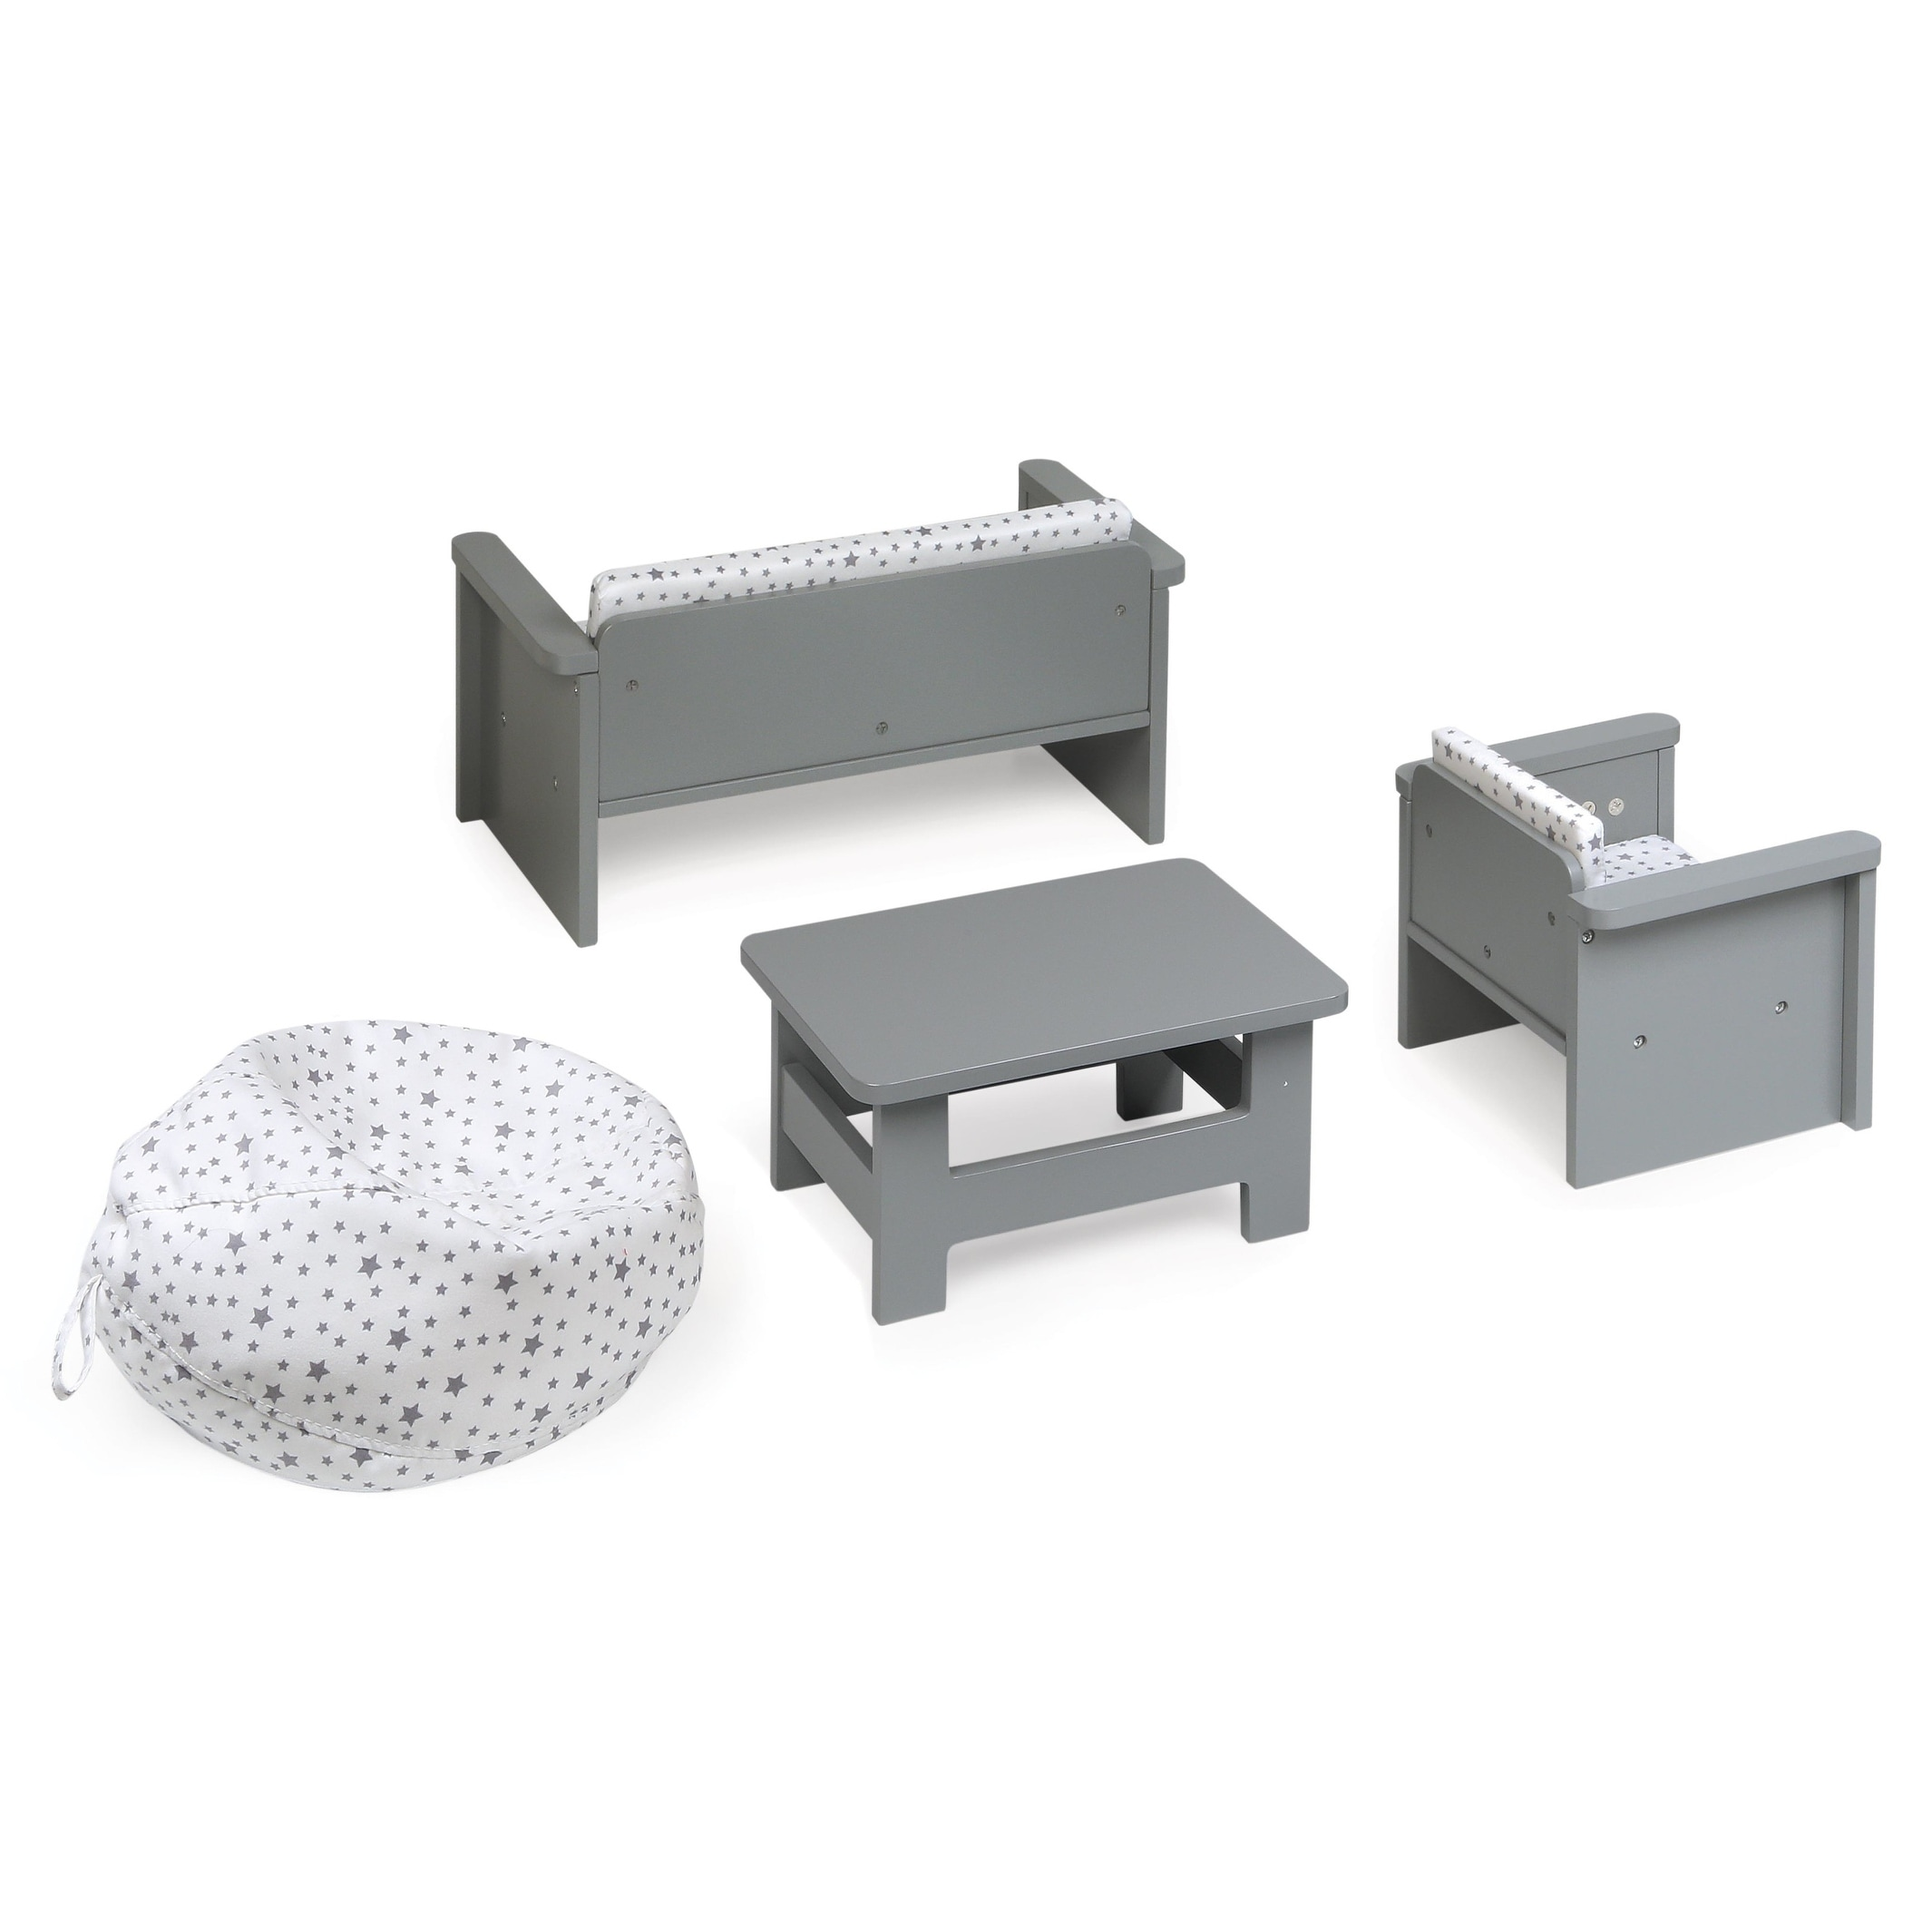 Living Room Furniture Set for 18 inch Dolls - Gray/White - Free ...